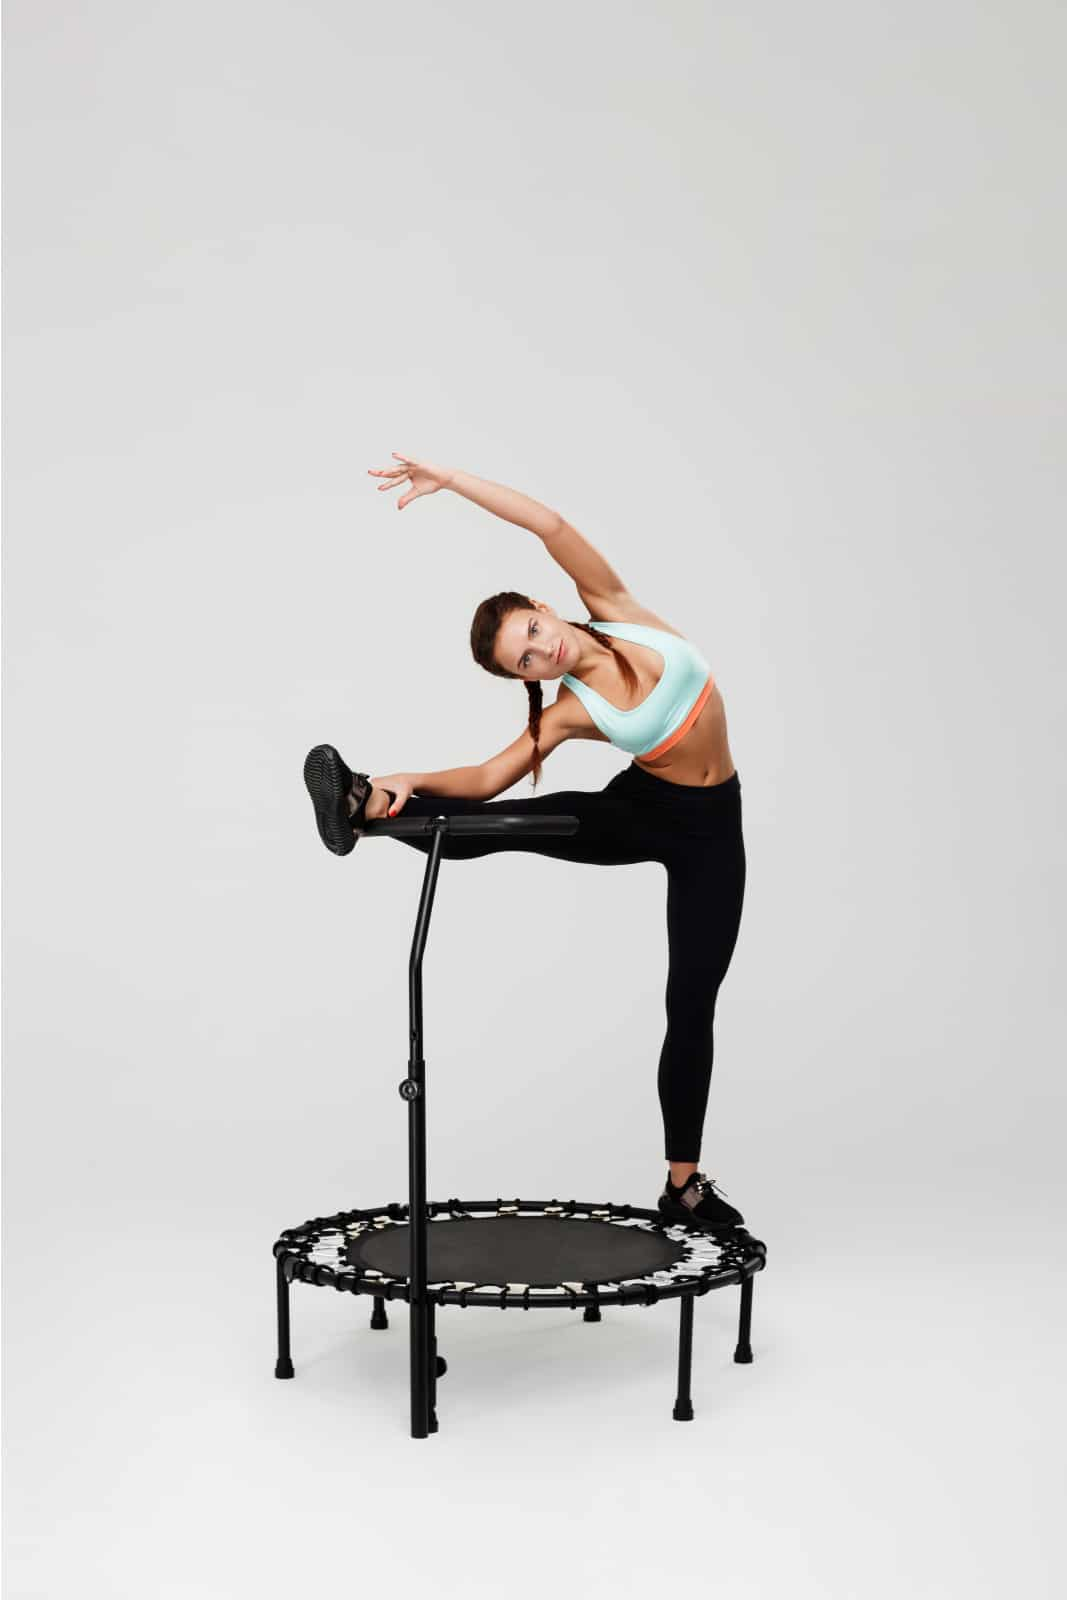 A woman wearing braided pigtails and a light blue and orange sports bra with black shoes and leggings stretches with her leg up and opposing arm arched up over her head on a black rebounding trampoline.